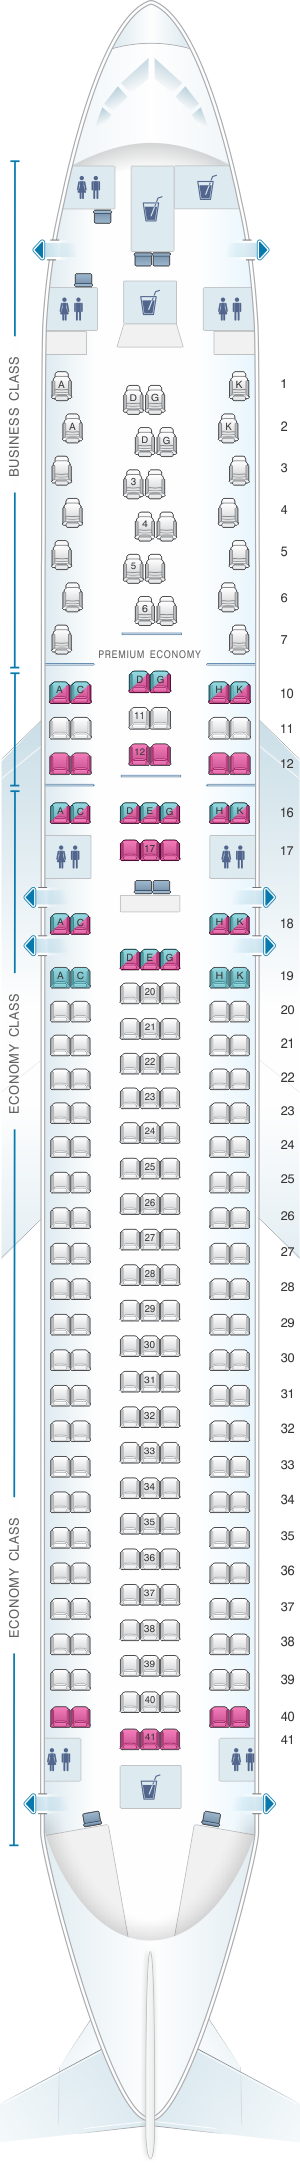 Seat map for Austrian Airlines Boeing B767 300ER V3